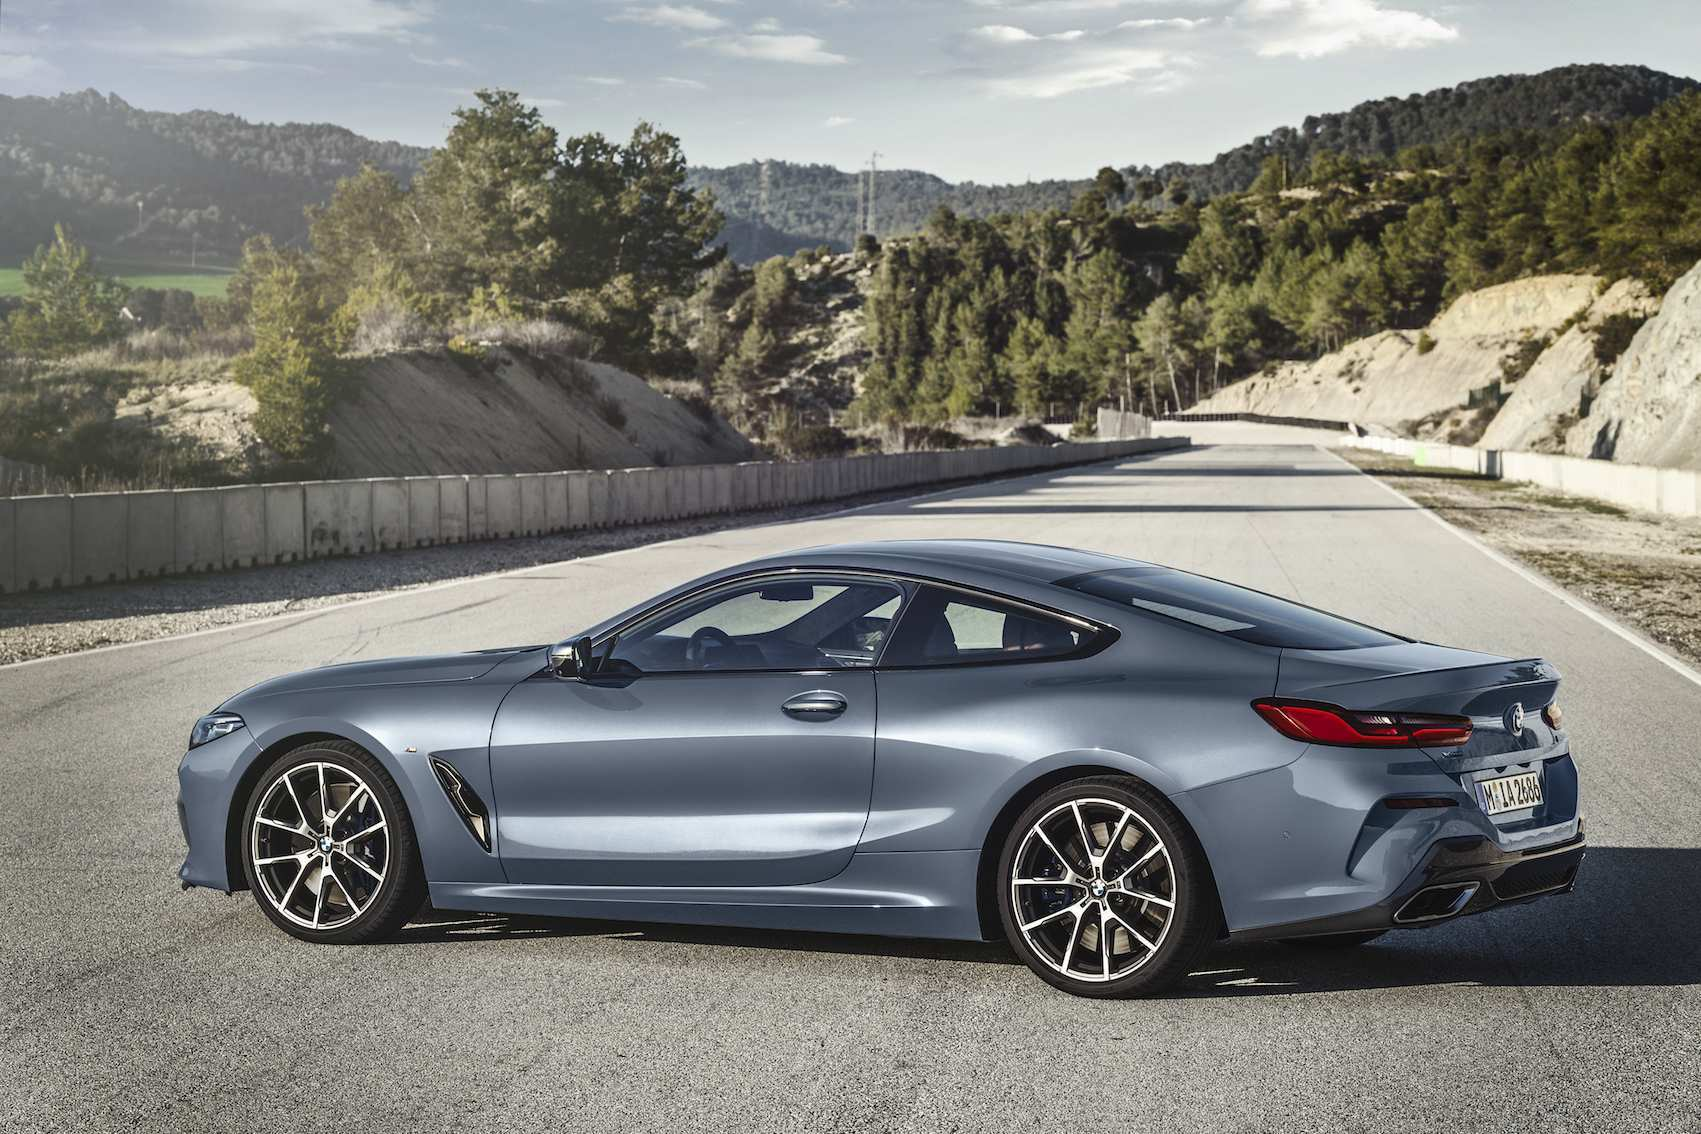 12 Great 2019 Bmw Coupe Prices by 2019 Bmw Coupe